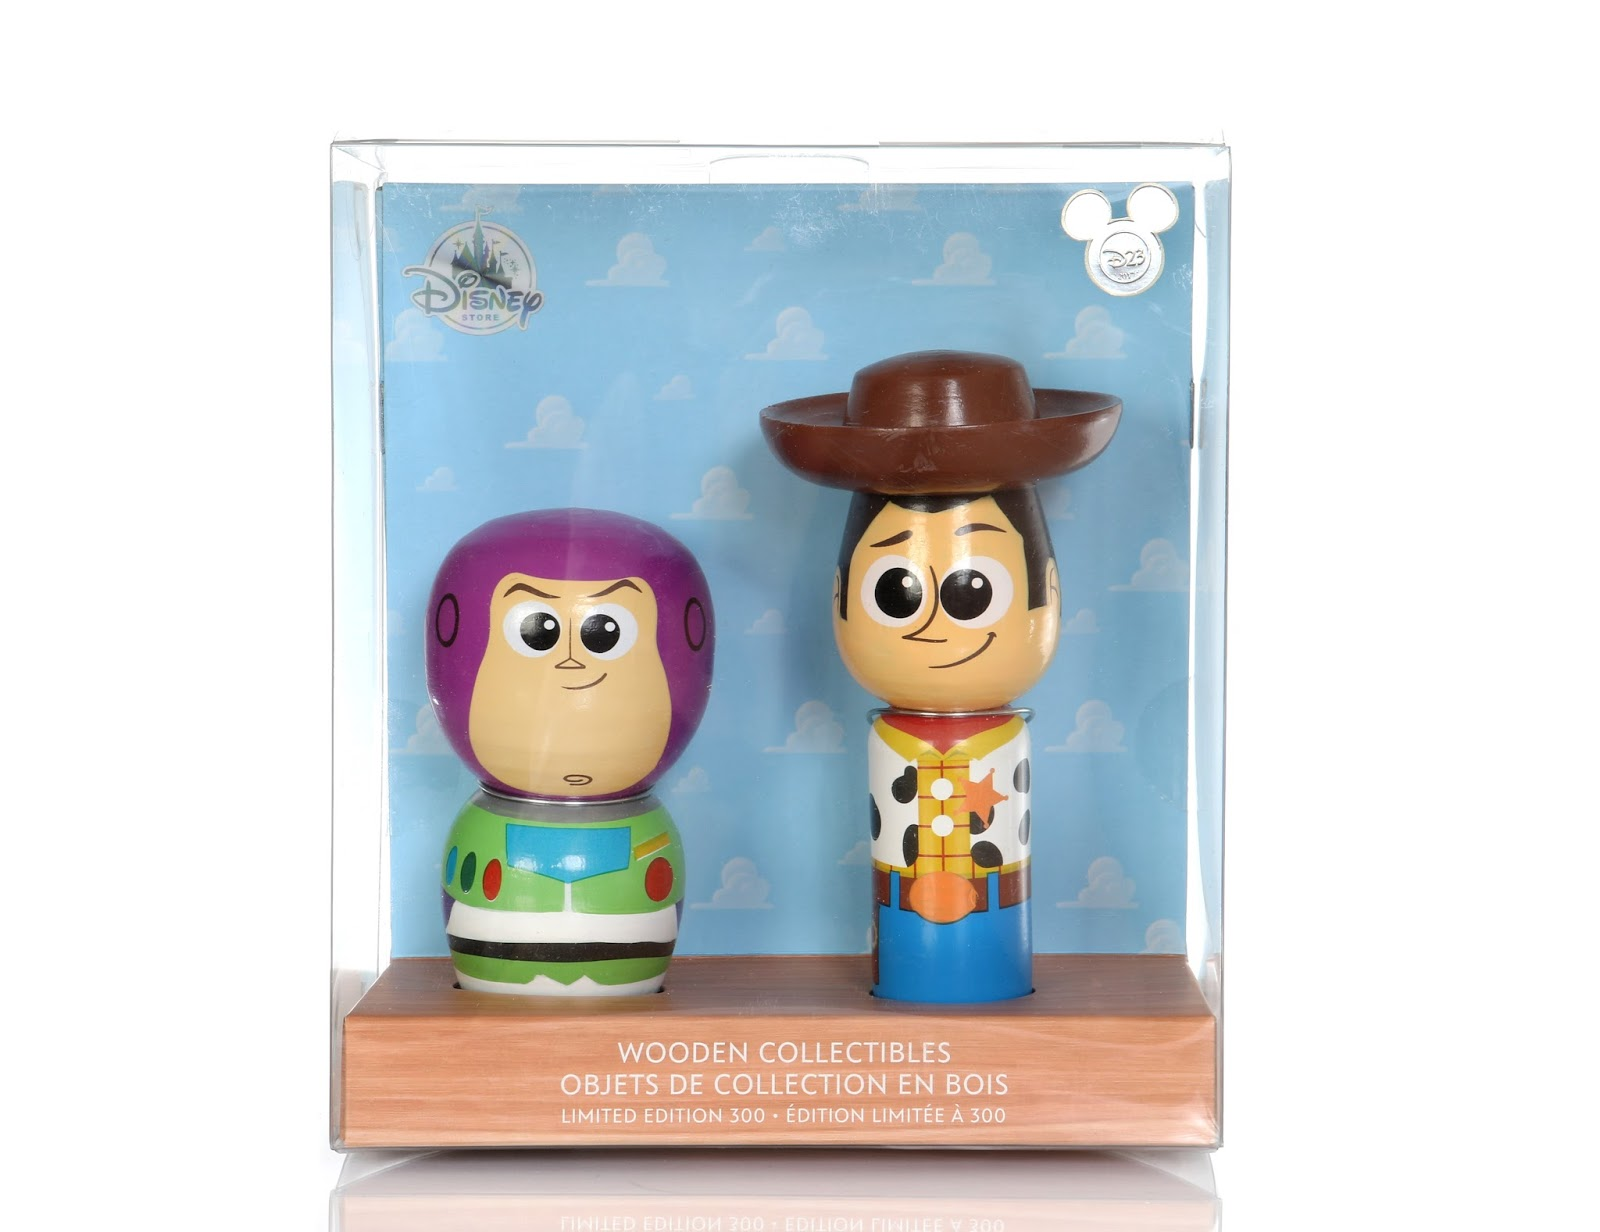 Toy Story D23 Expo 2017 Wooden Collectibles